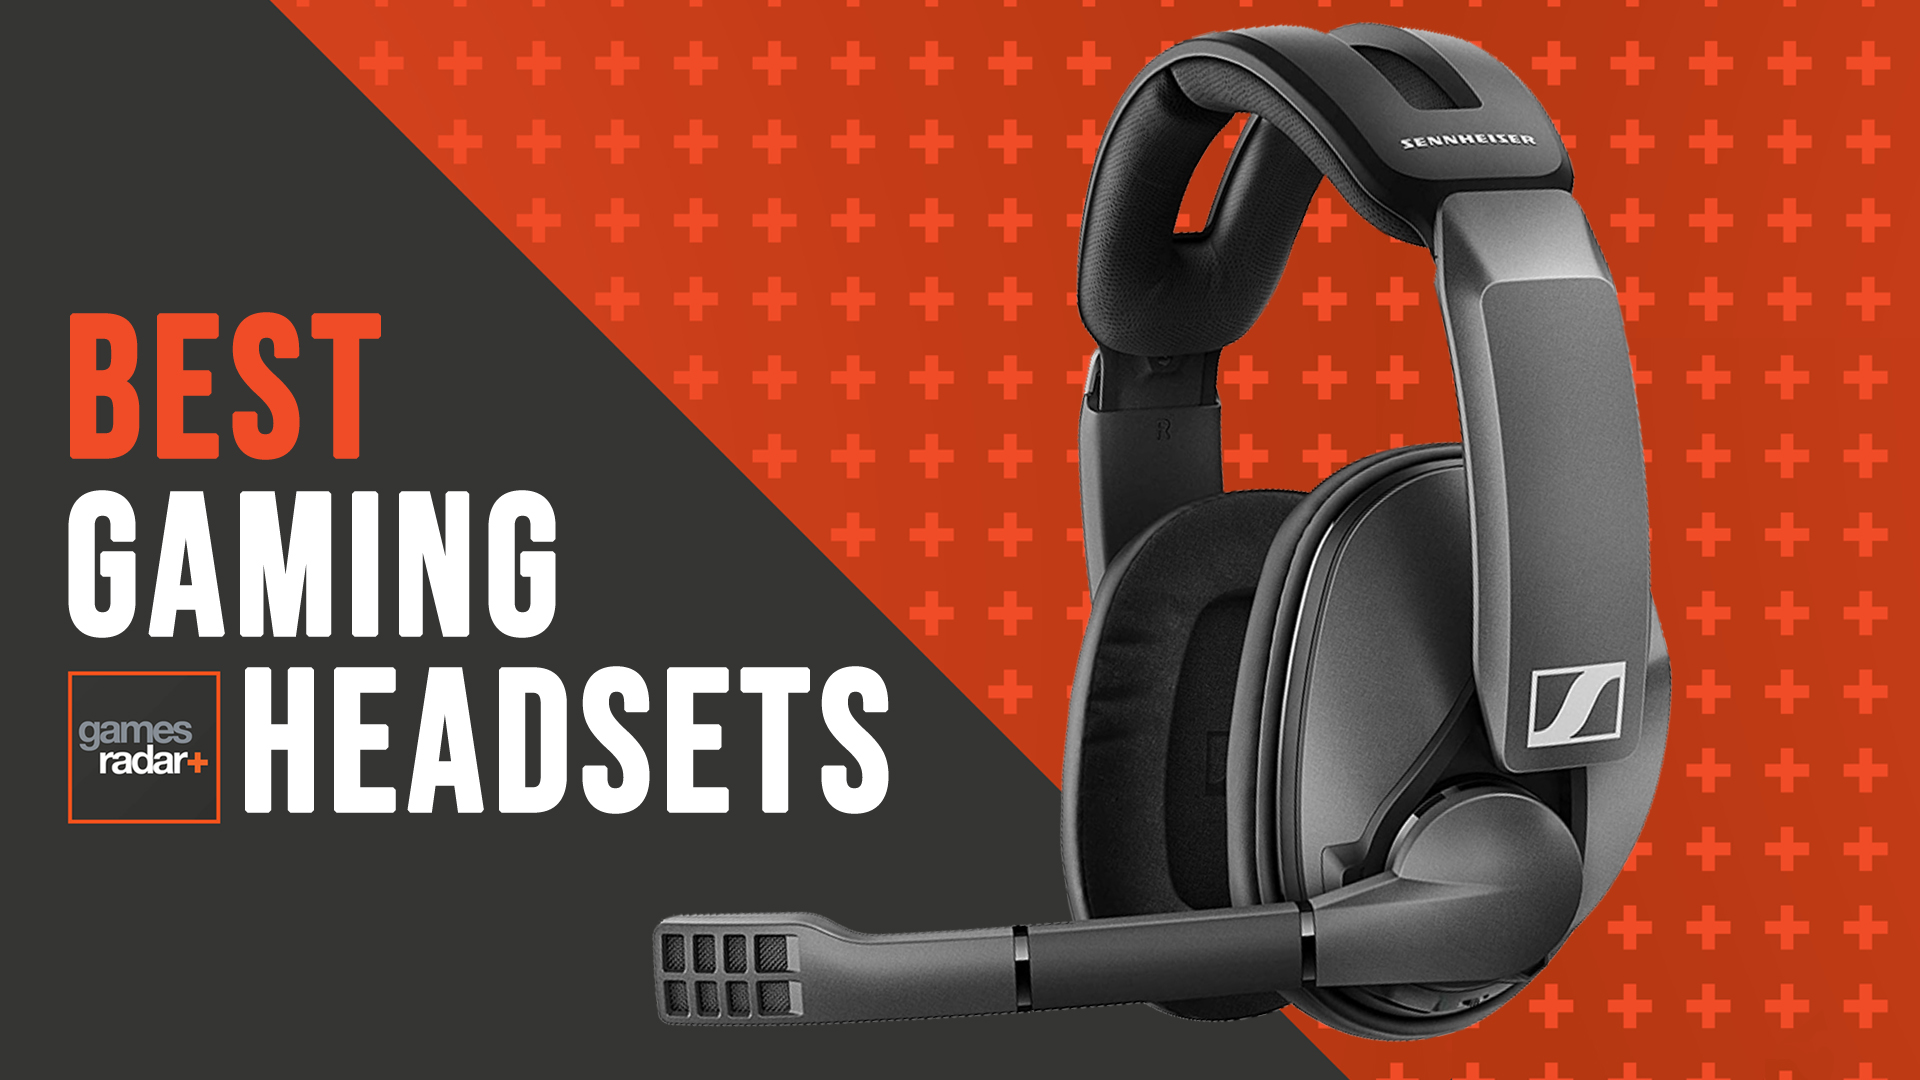 Best Gaming Headphones 2021 The best gaming headsets 2020 | GamesRadar+